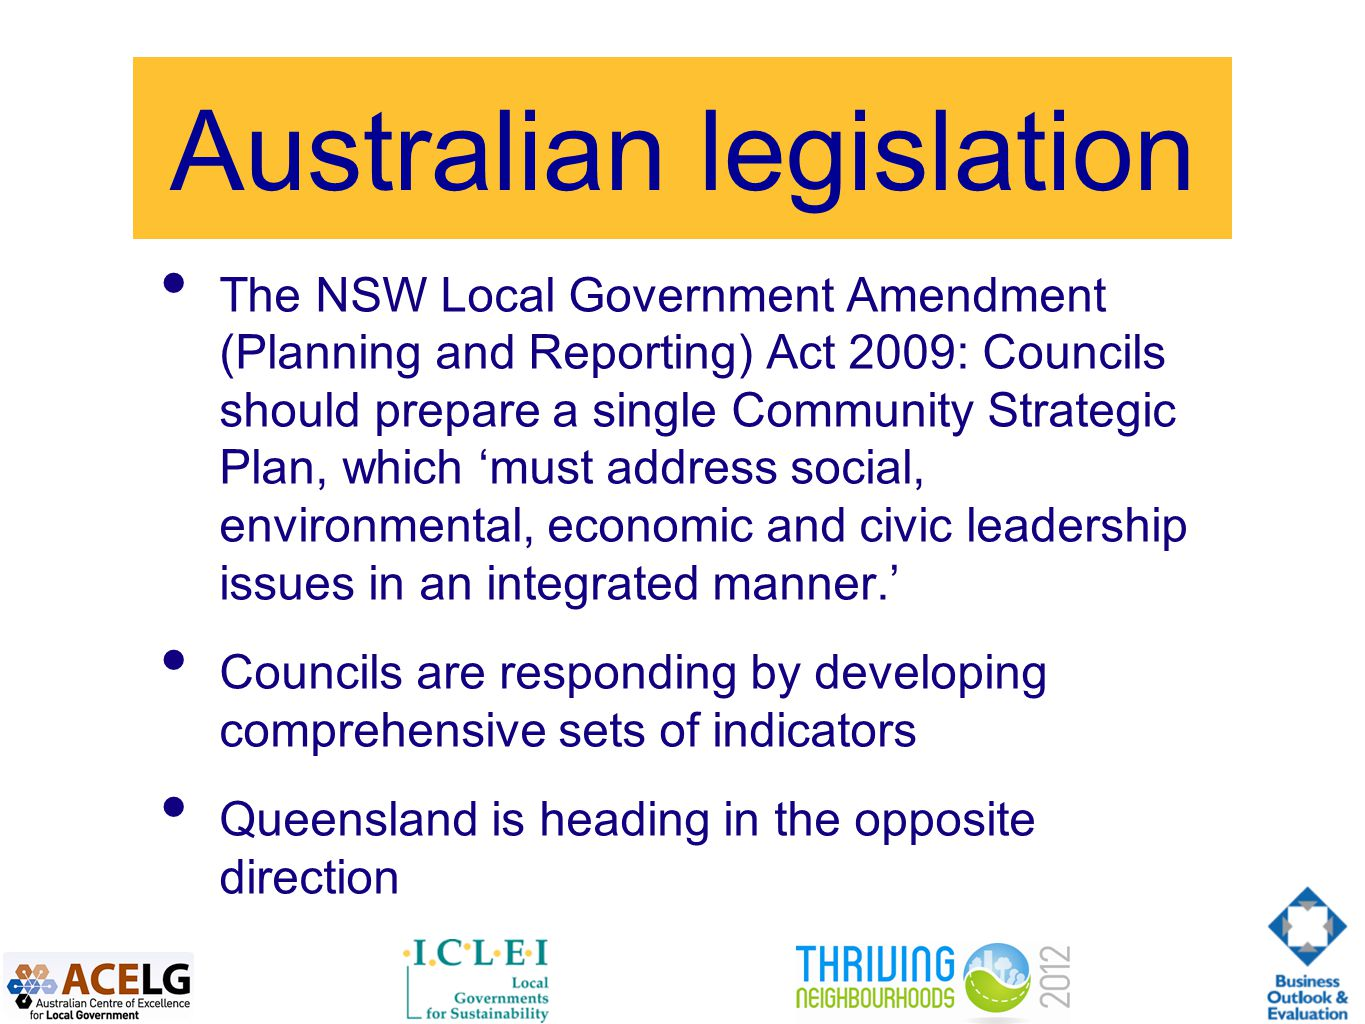 Australian legislation The NSW Local Government Amendment (Planning and Reporting) Act 2009: Councils should prepare a single Community Strategic Plan, which 'must address social, environmental, economic and civic leadership issues in an integrated manner.' Councils are responding by developing comprehensive sets of indicators Queensland is heading in the opposite direction